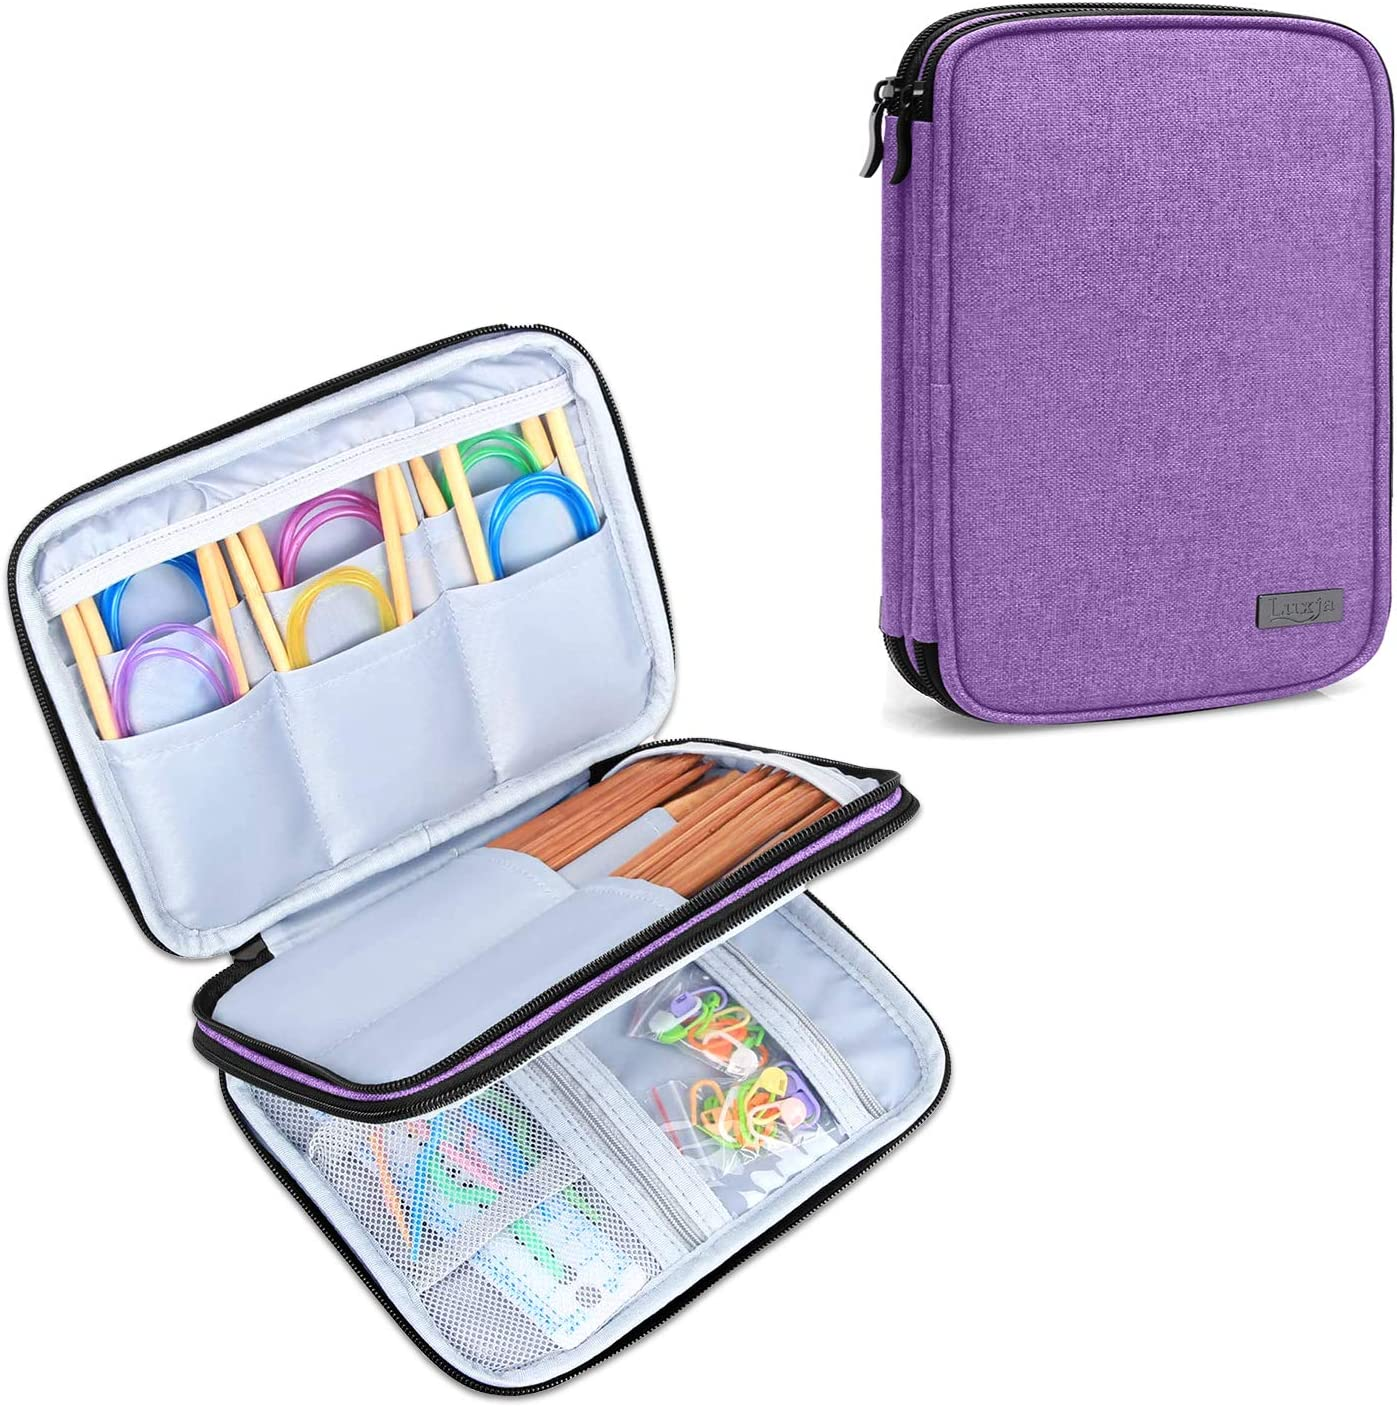 Luxja Knitting Max 75% OFF Needles Raleigh Mall Case up to Organizer Inches Travel St 8